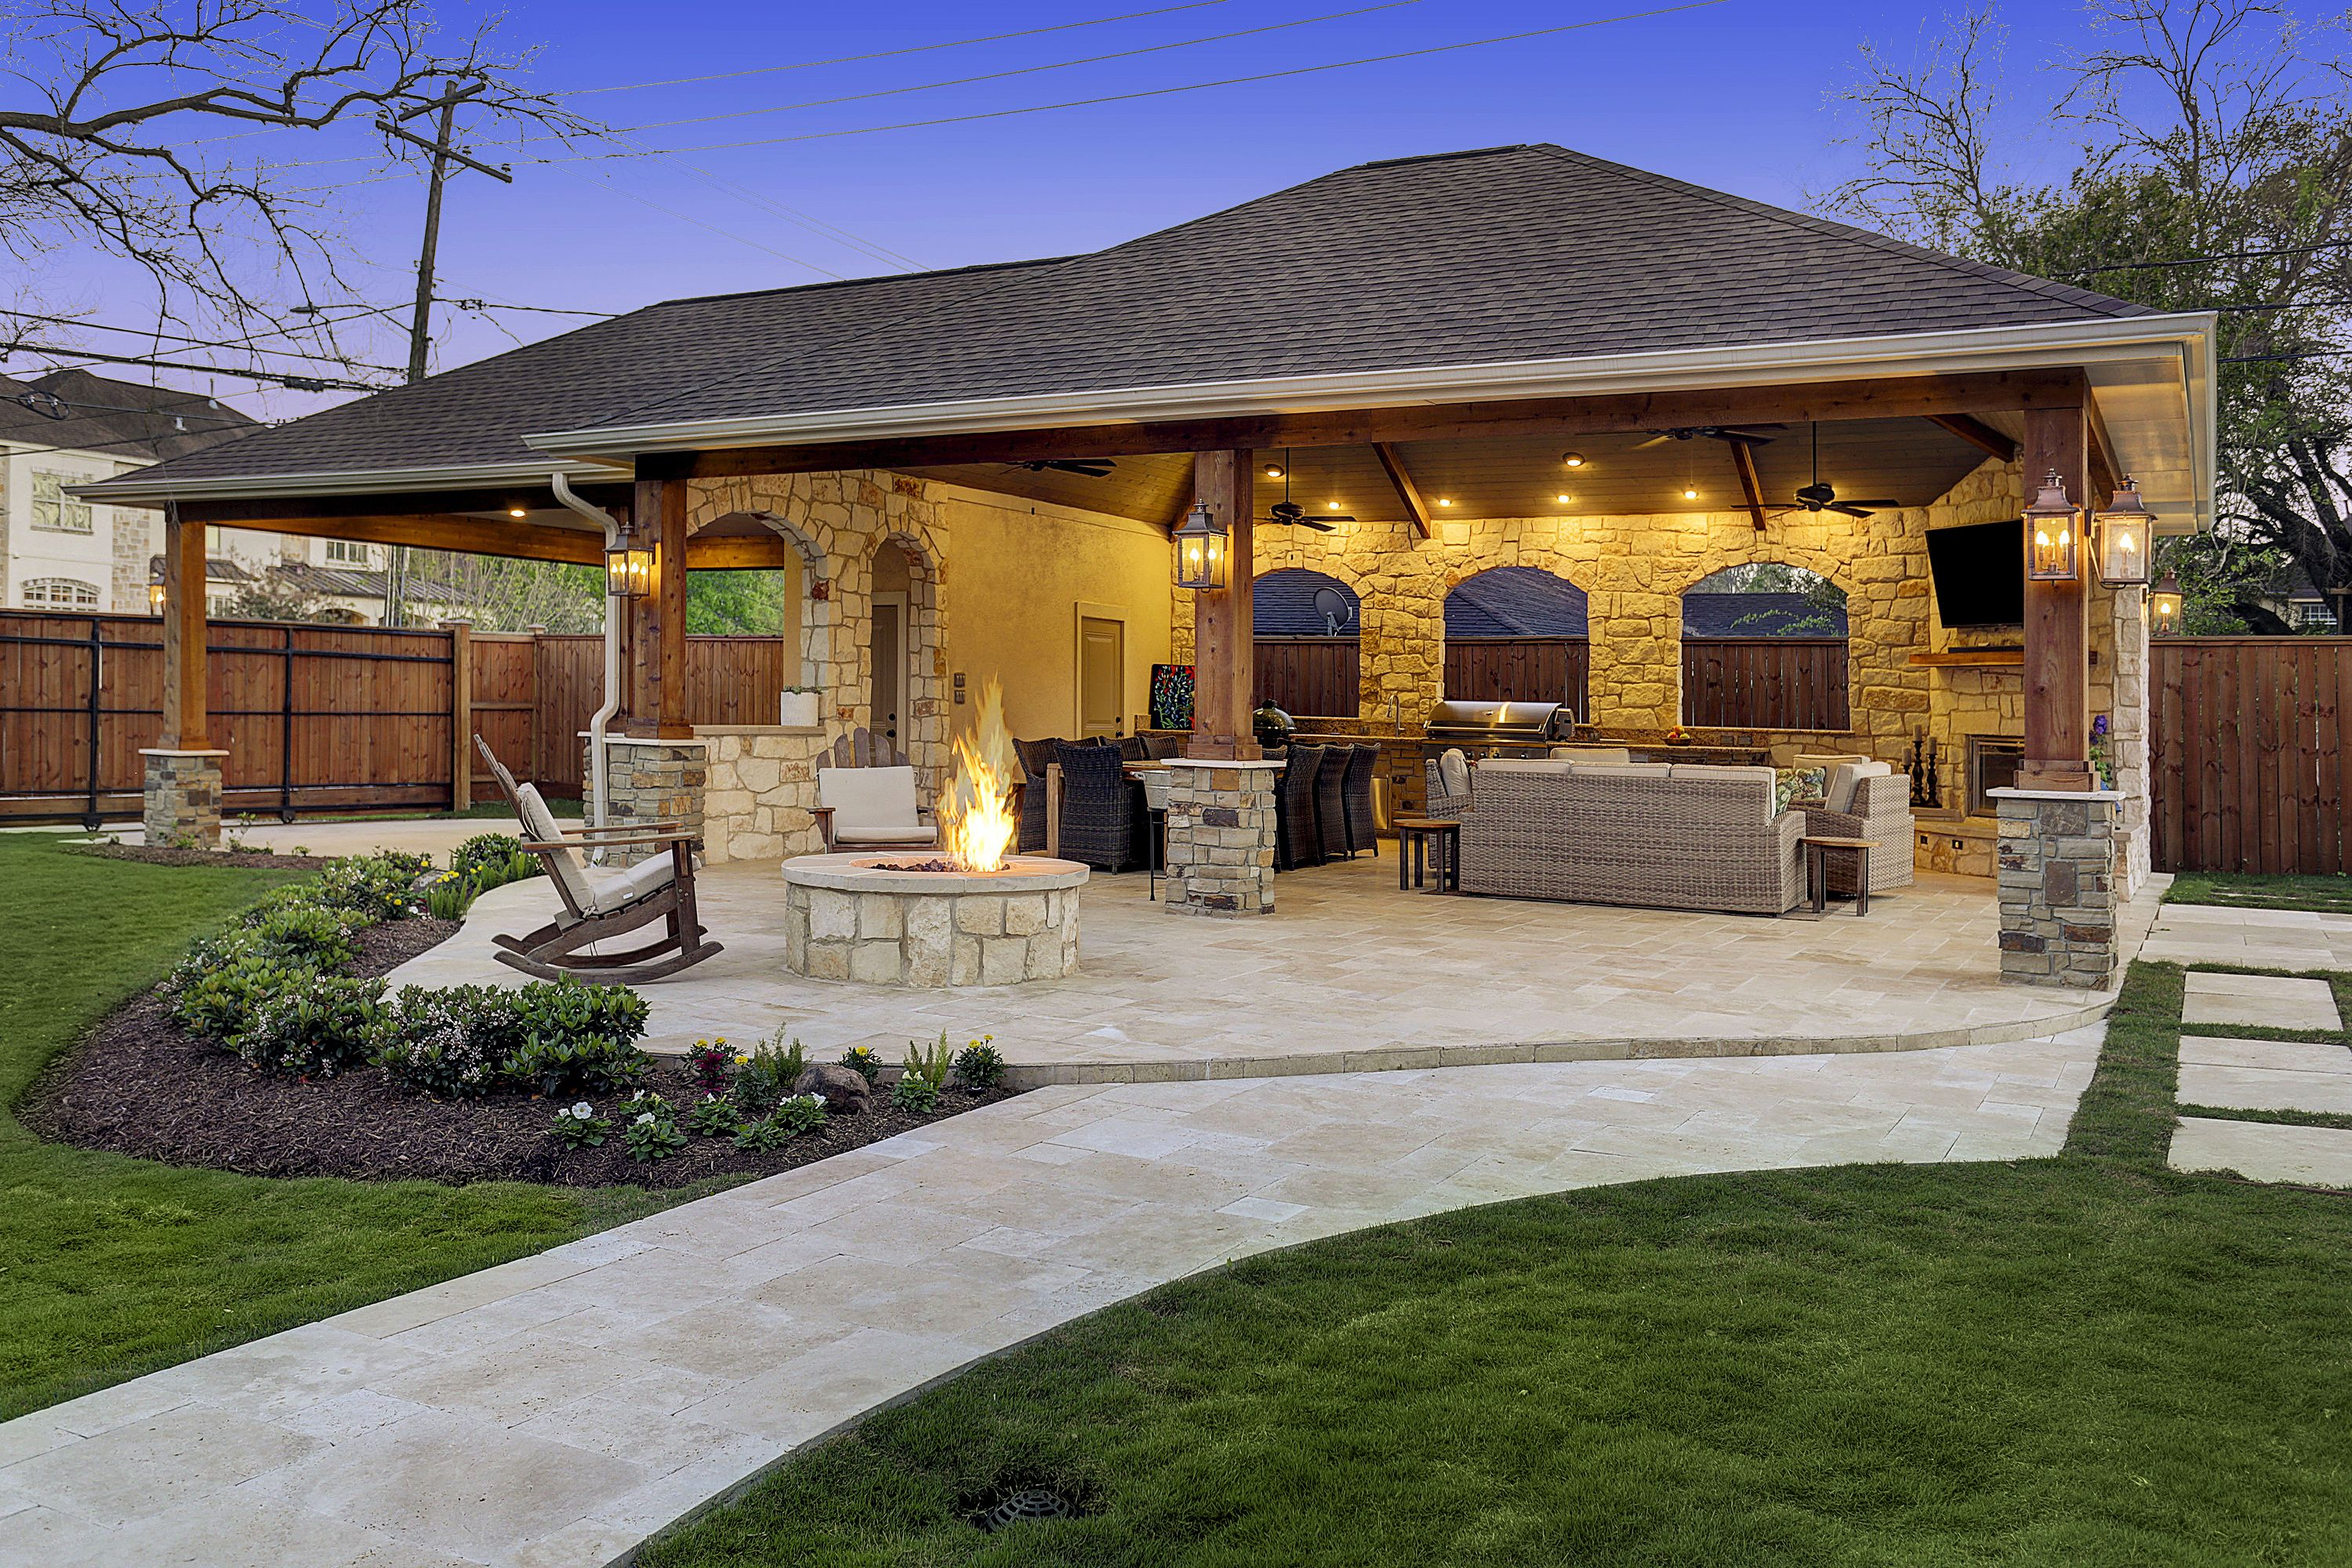 Expanded Outdoor Living Area in Houston | Outdoor living ... on Retreat Outdoor Living id=14388